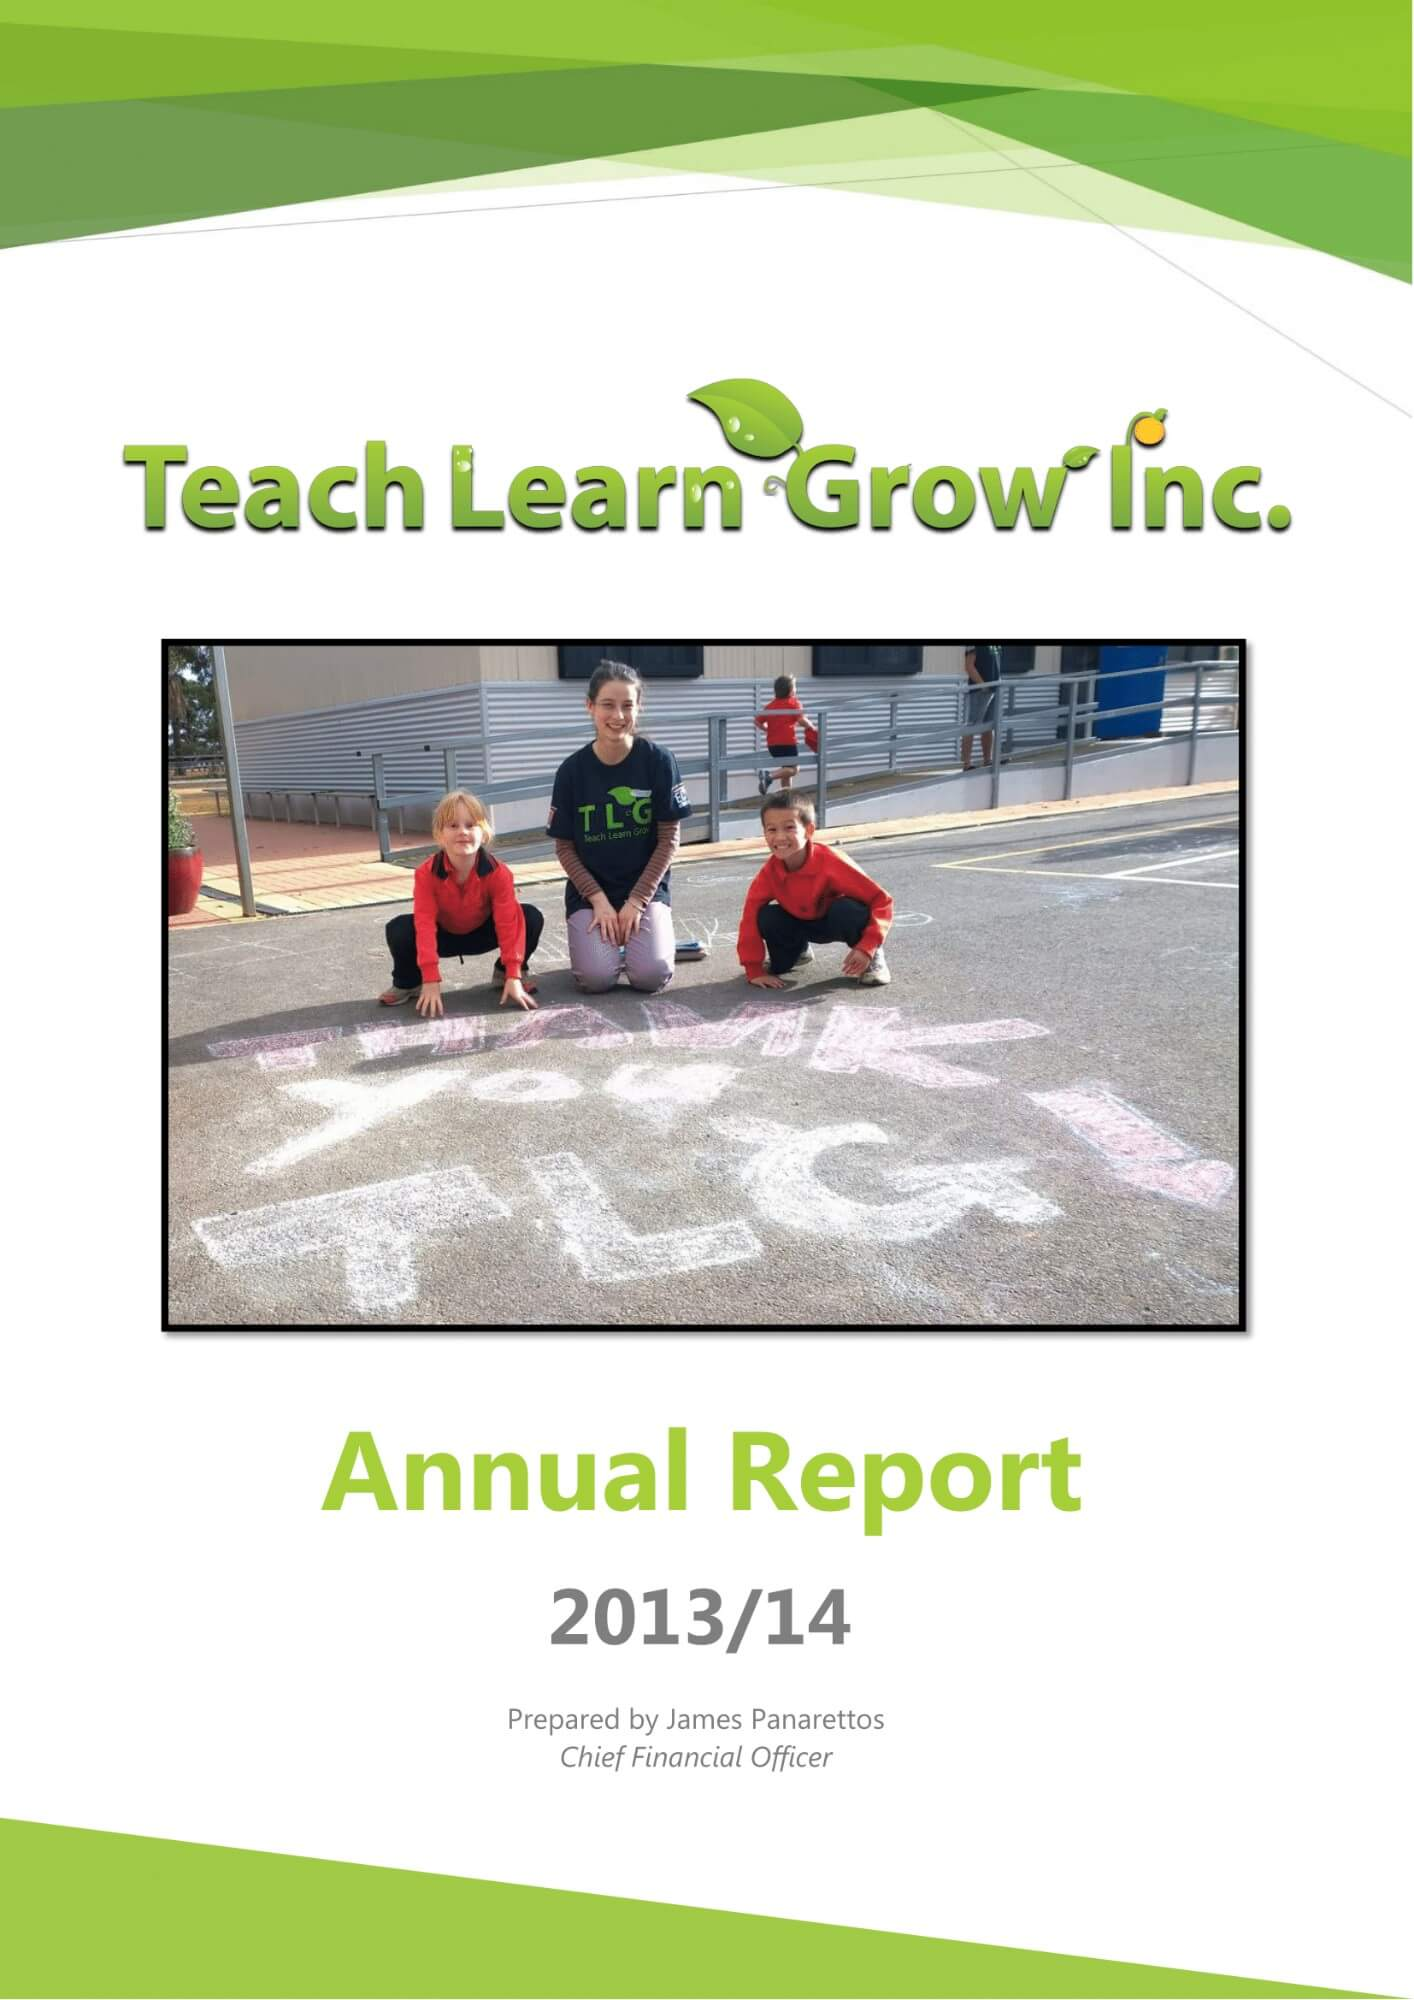 tlg-annual-report-FY13-01.jpg